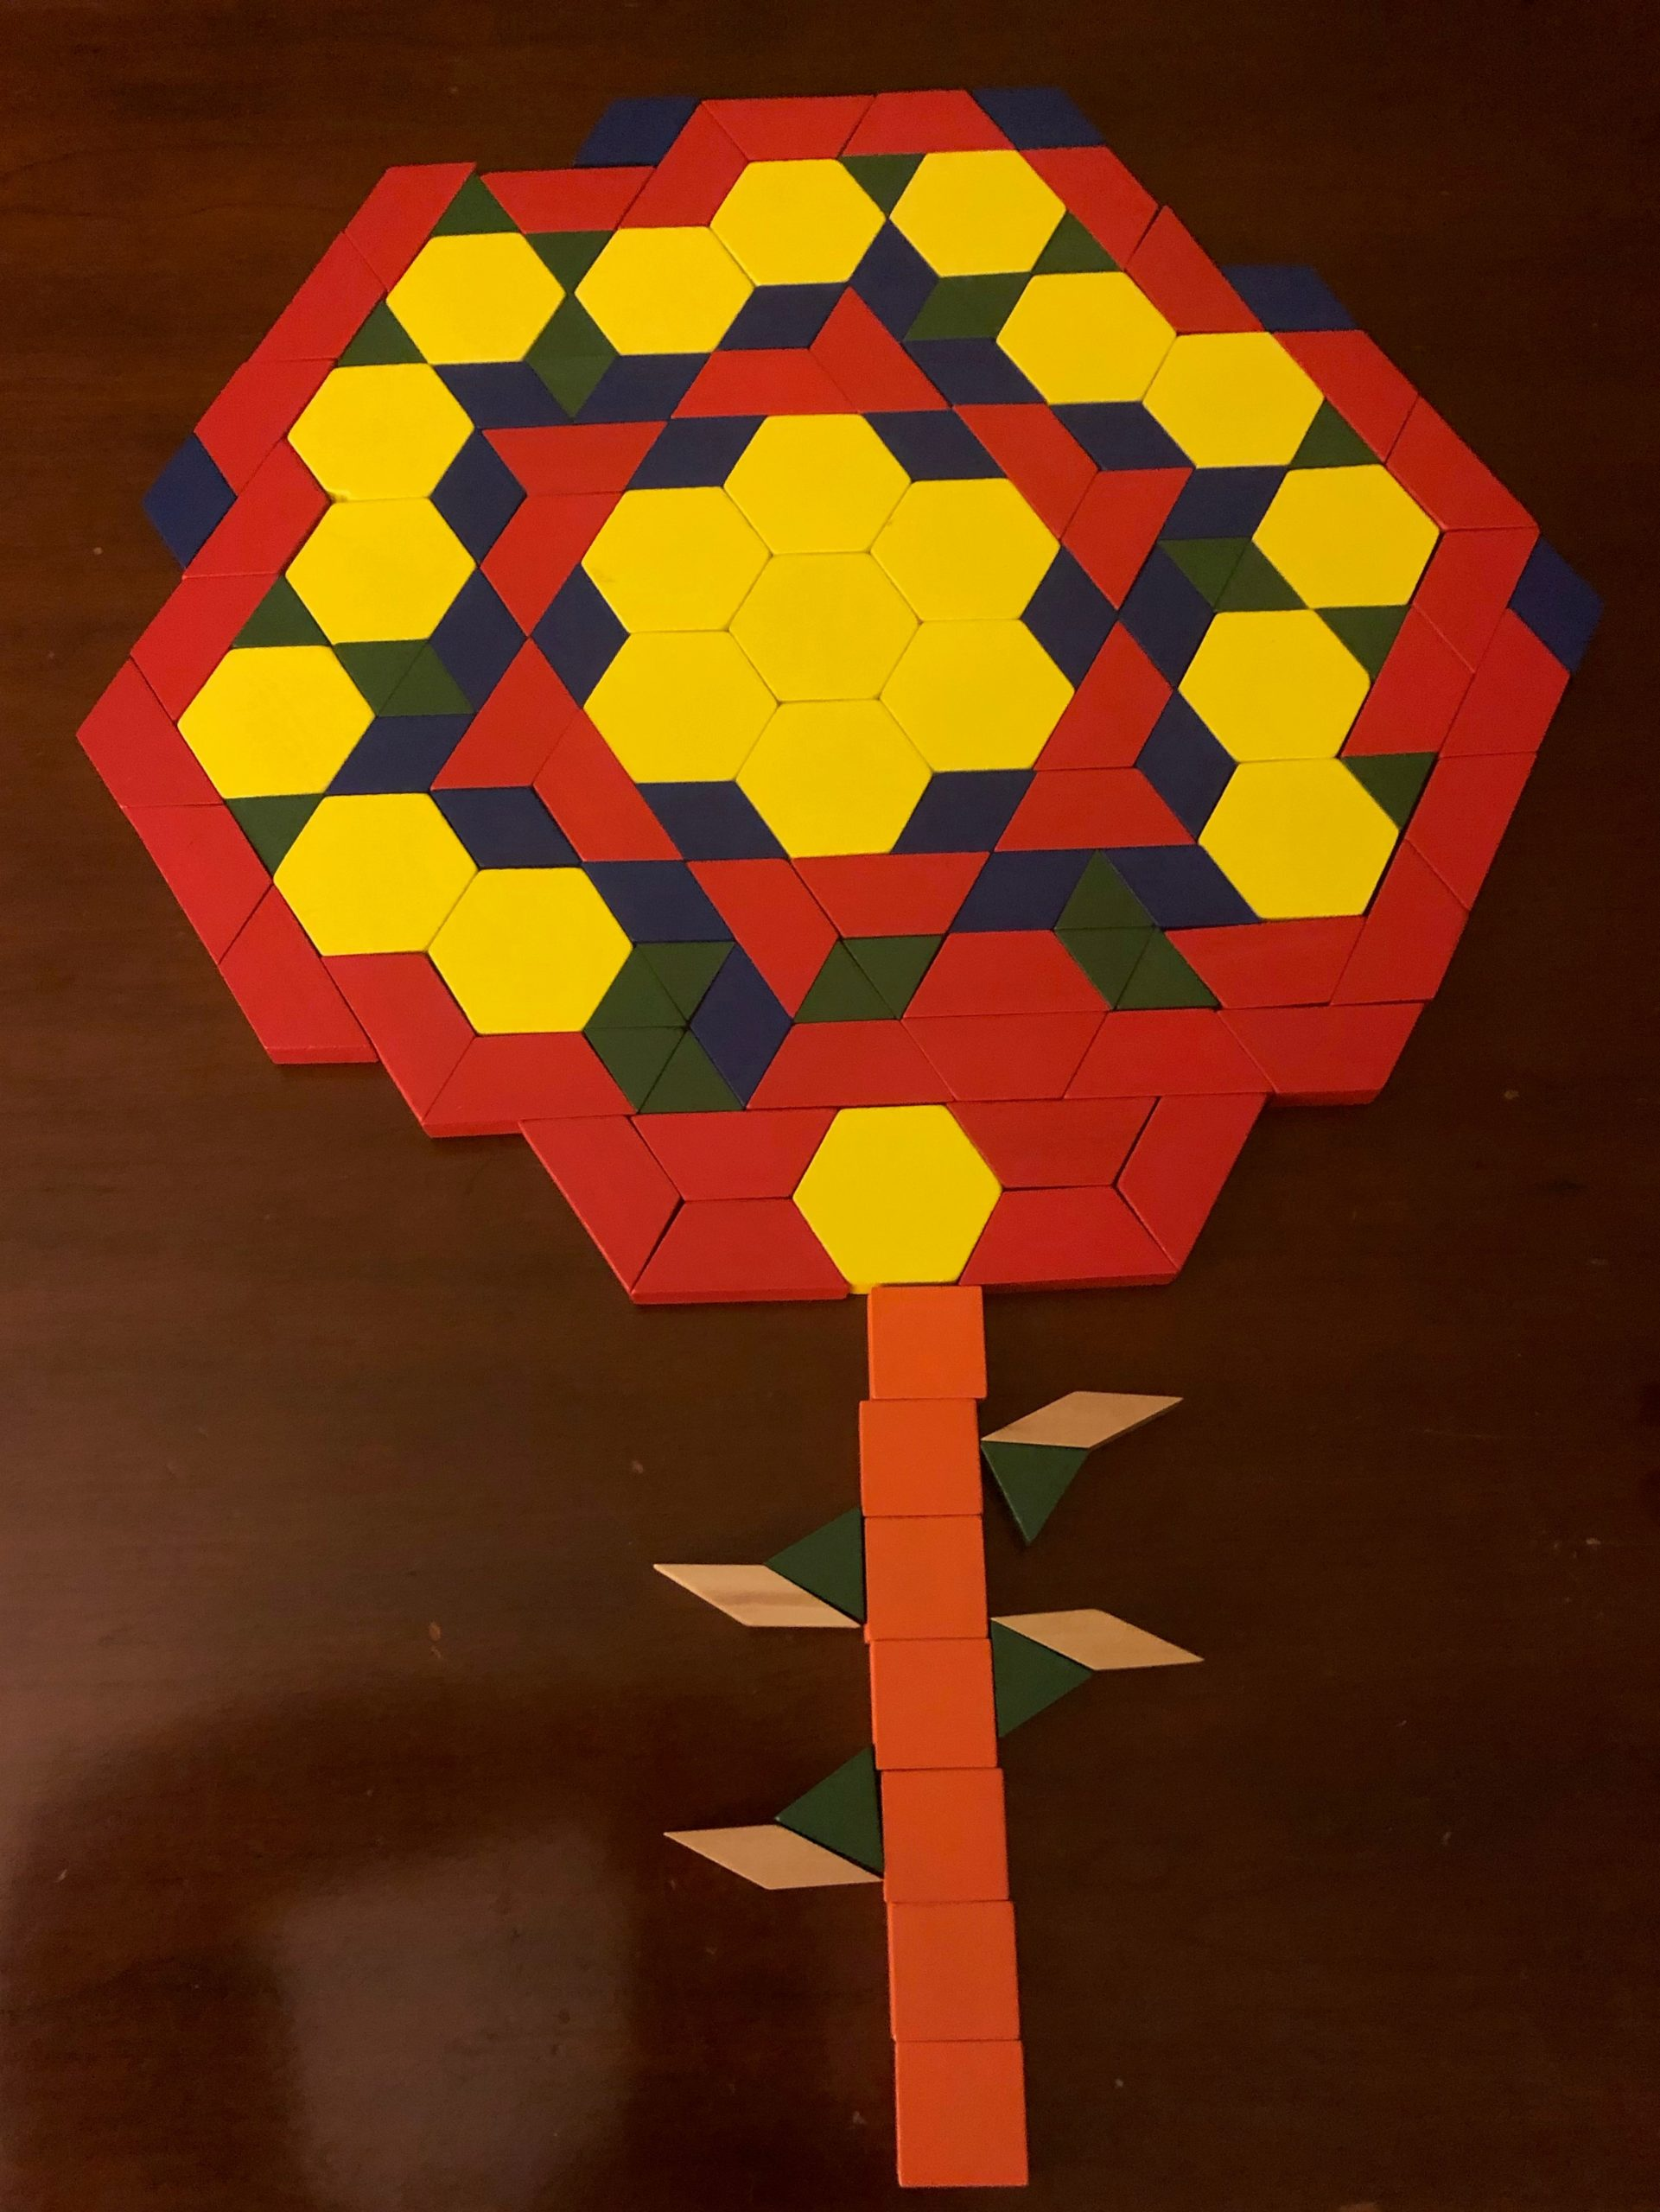 Tangram puzzle of a flower used to improve visual perceptual skills